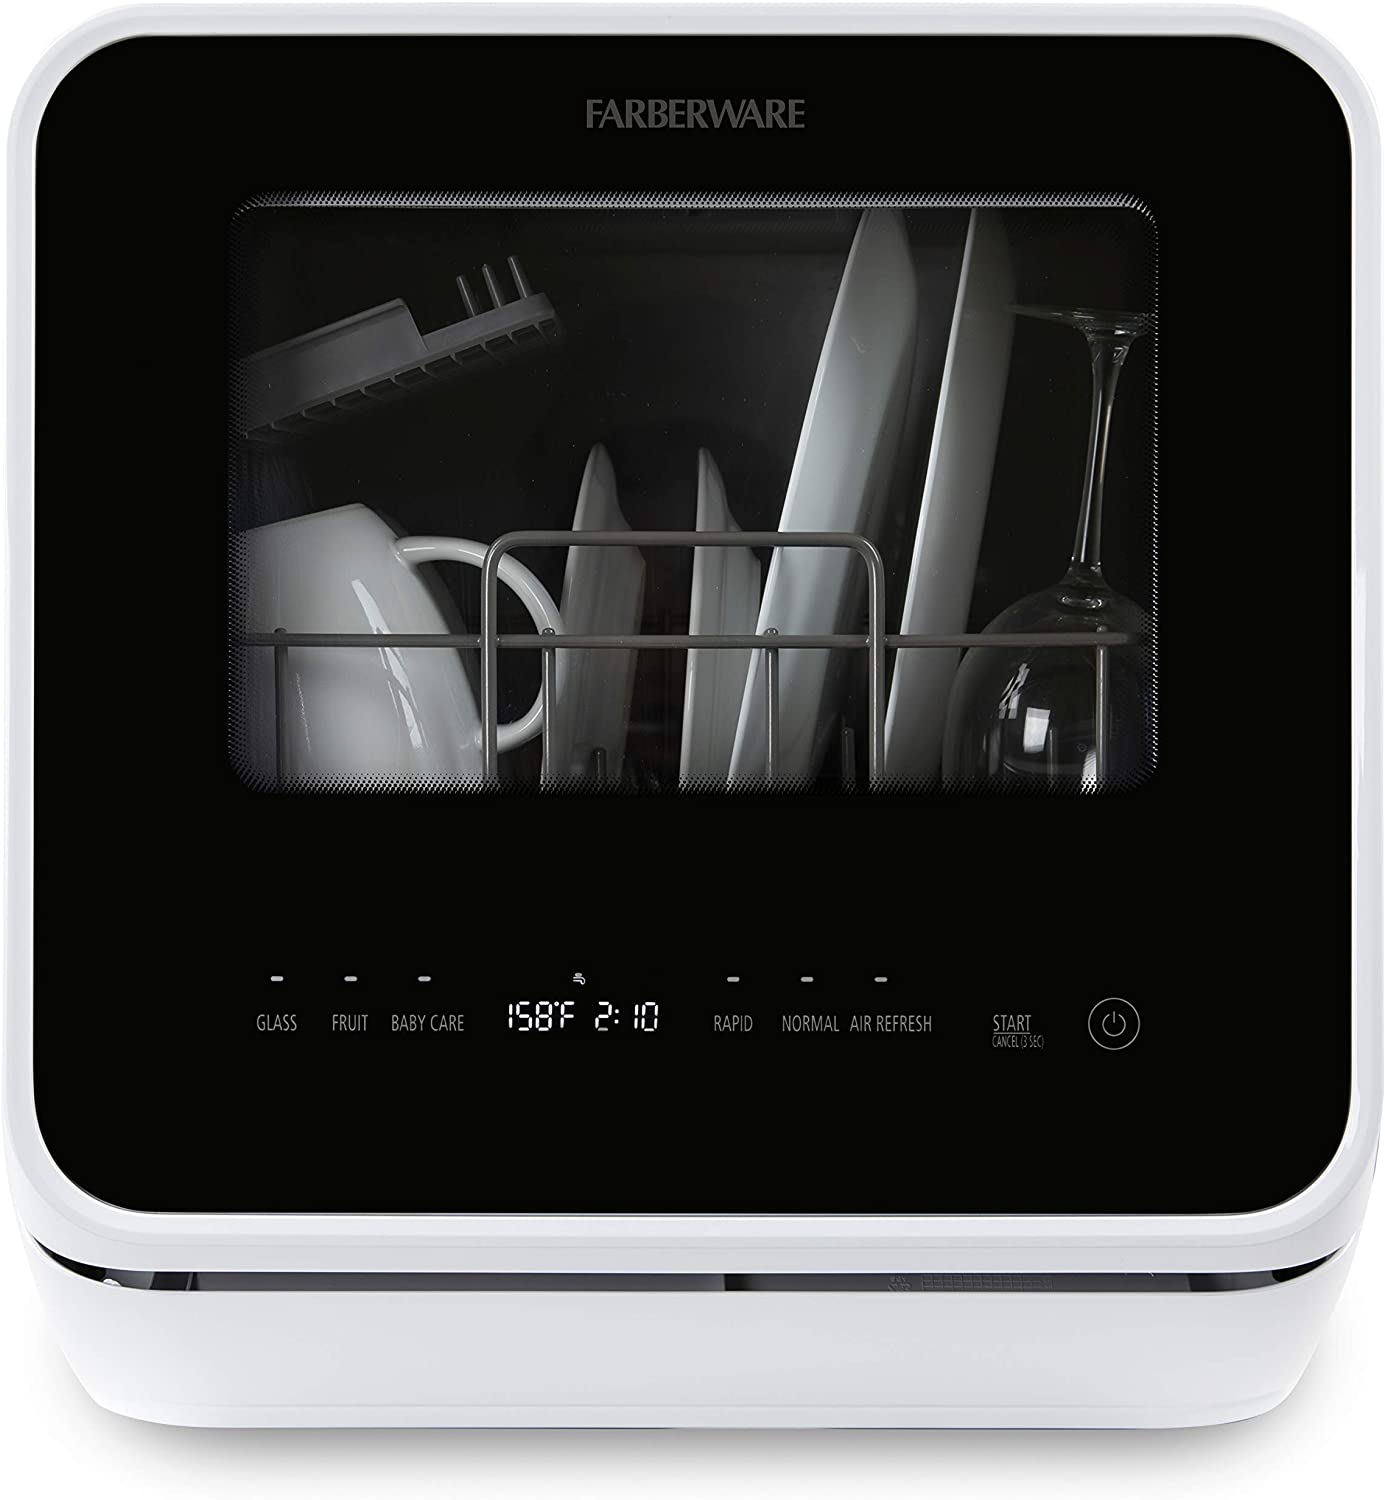 Farberware FDW05ASBWHA Countertop Dishwasher